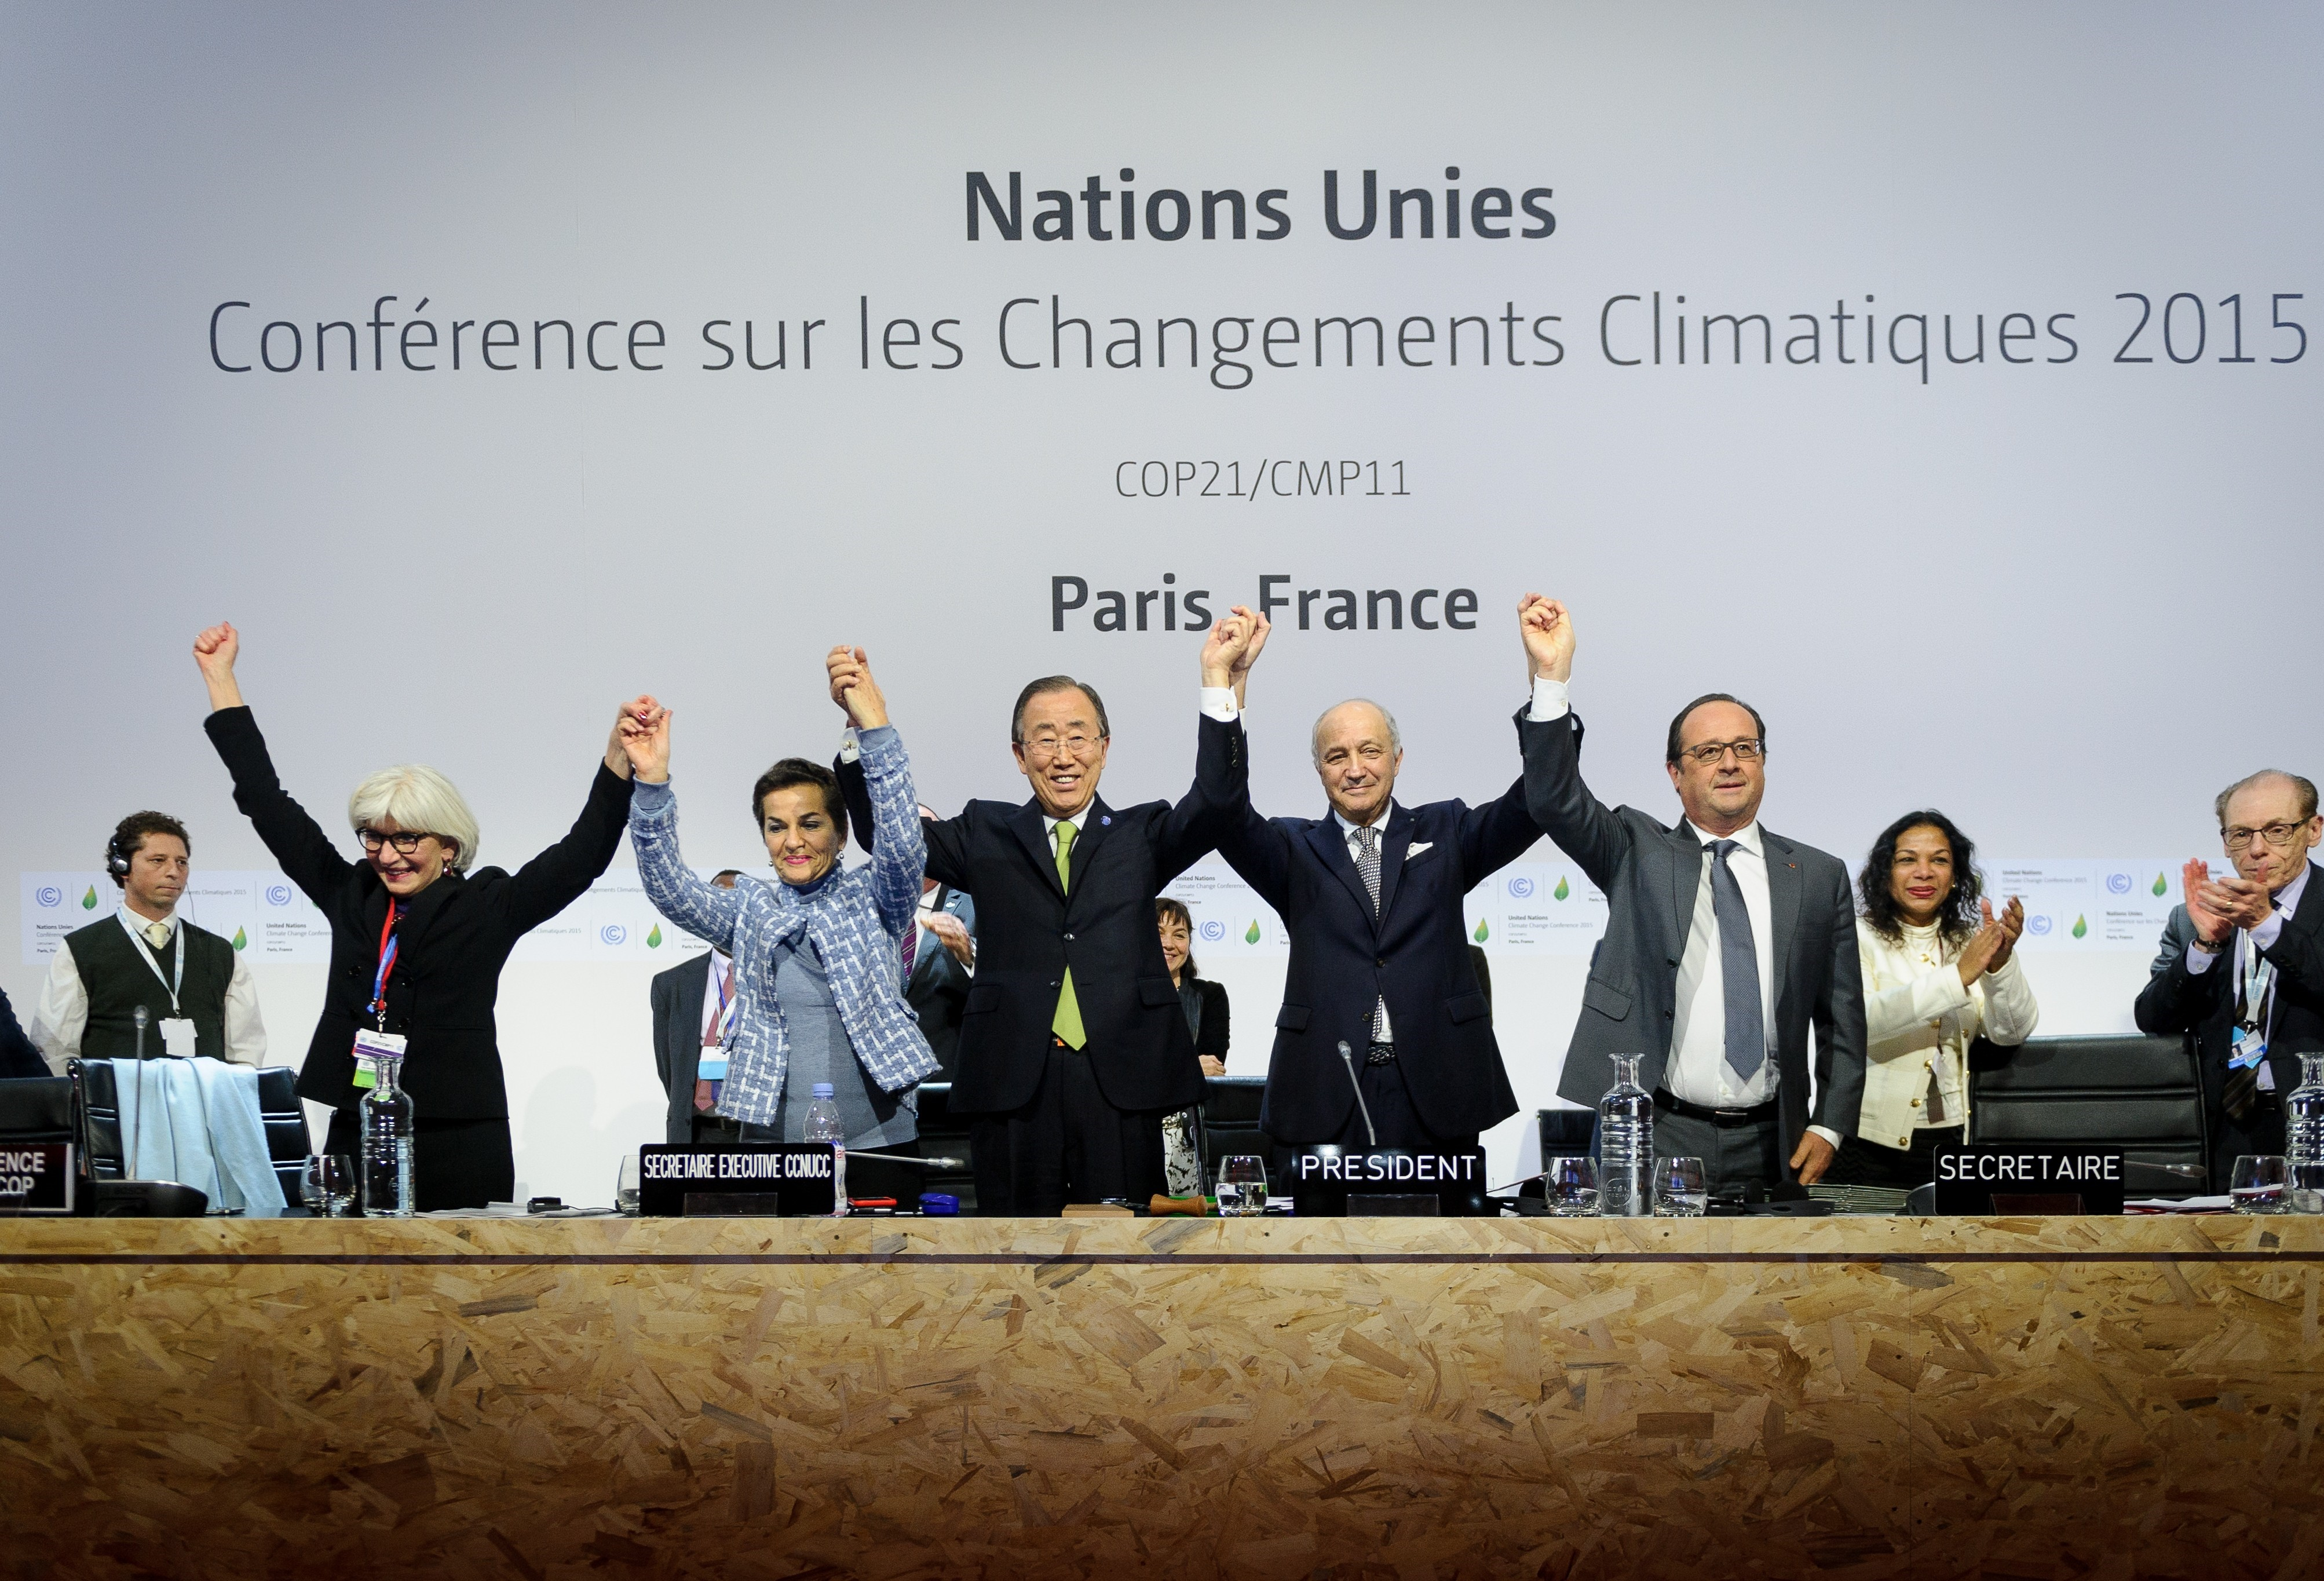 Donald Trump Paris Agreement Withdraw Would Challenge World | Time